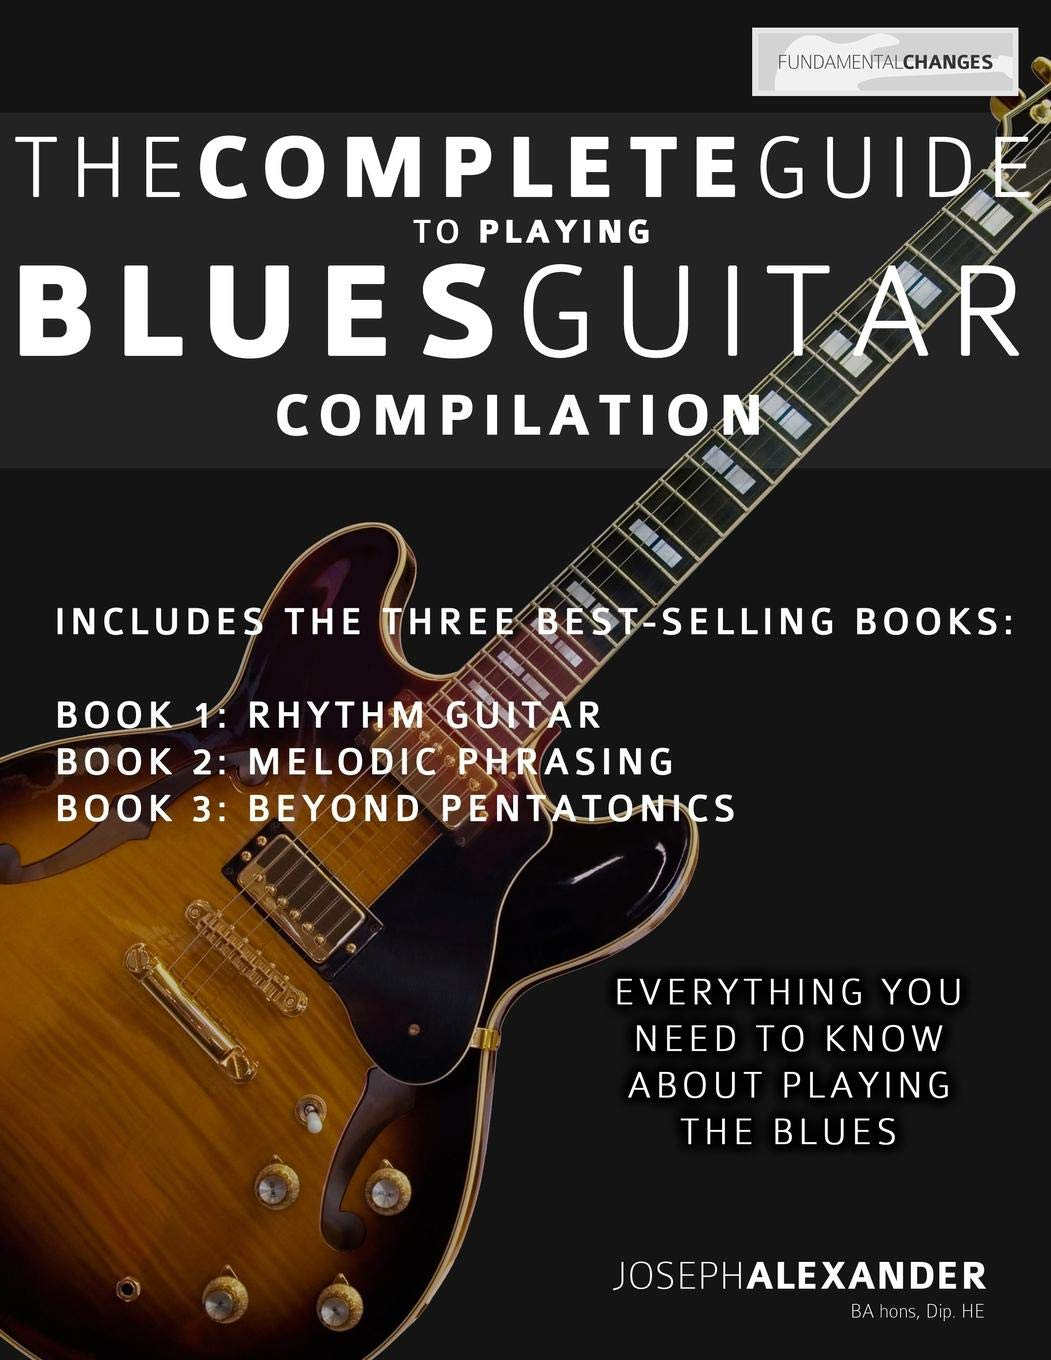 BLUES GUITAR TUITION BEGINNERS TO INTERMEDIATE VIDEO LESSONS DOWNLOAD